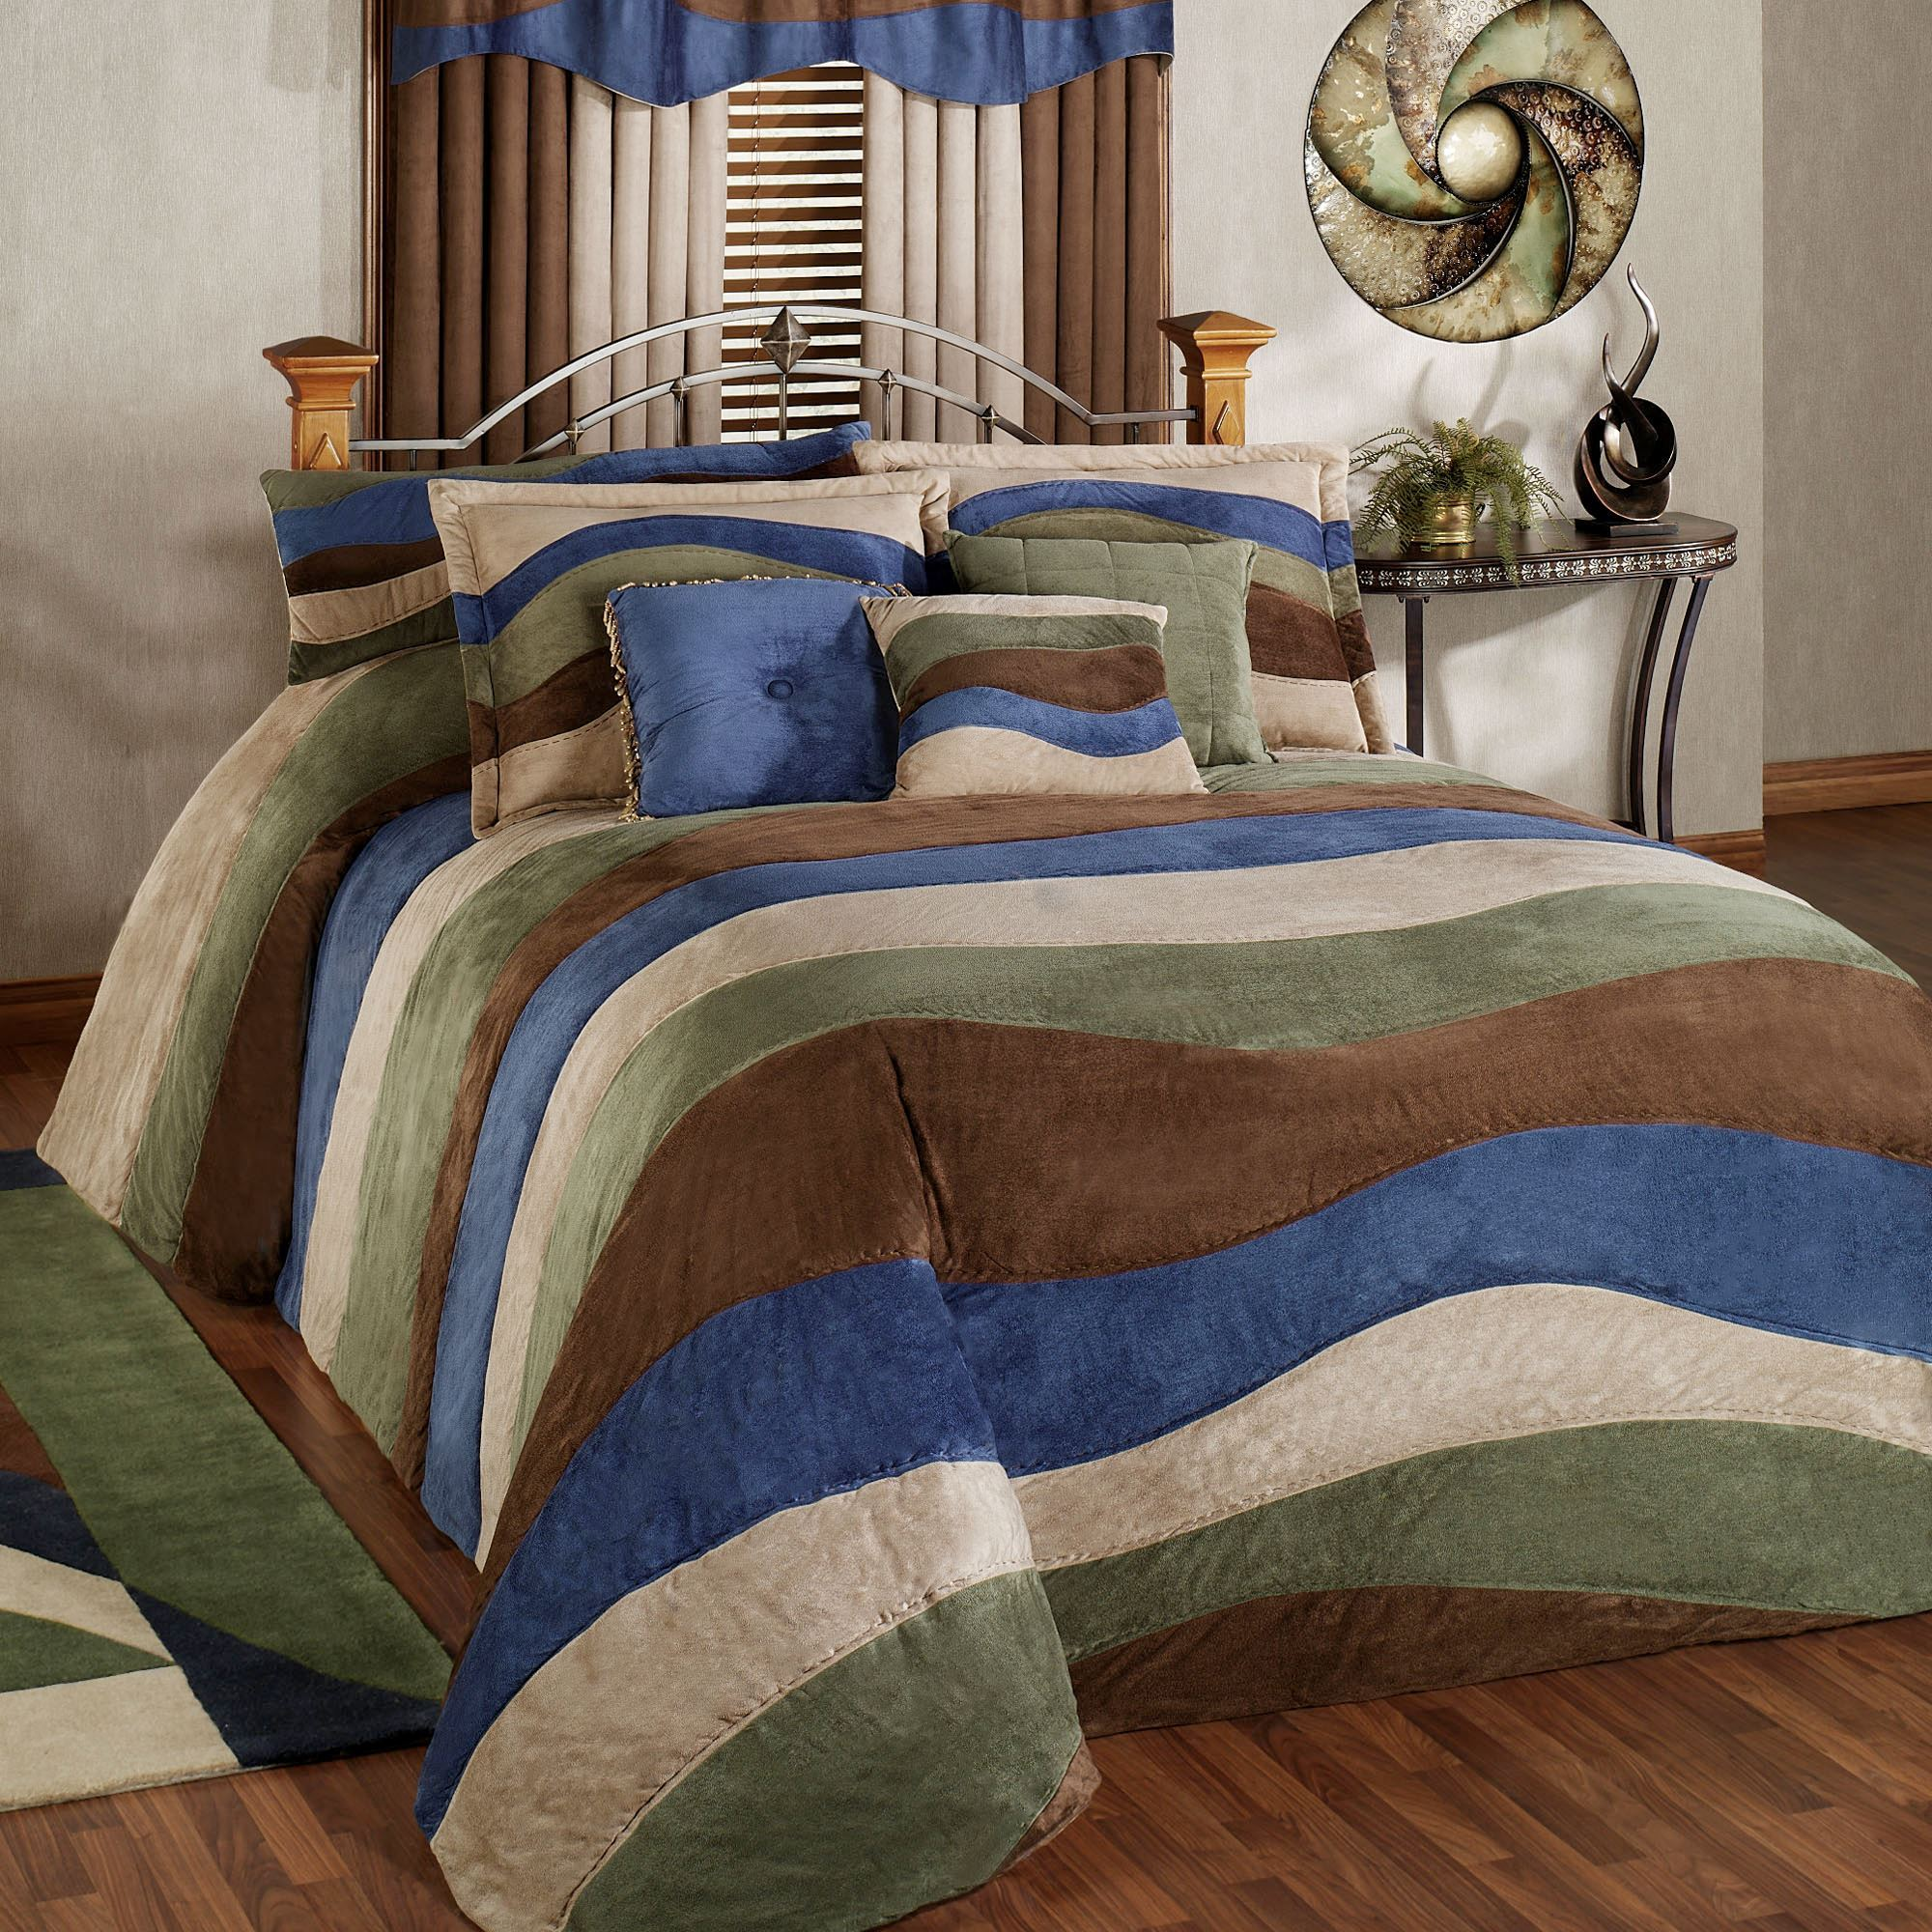 bag mainstays classic ip walmart coordinating in set bed a suede com comforter bedding noir micro